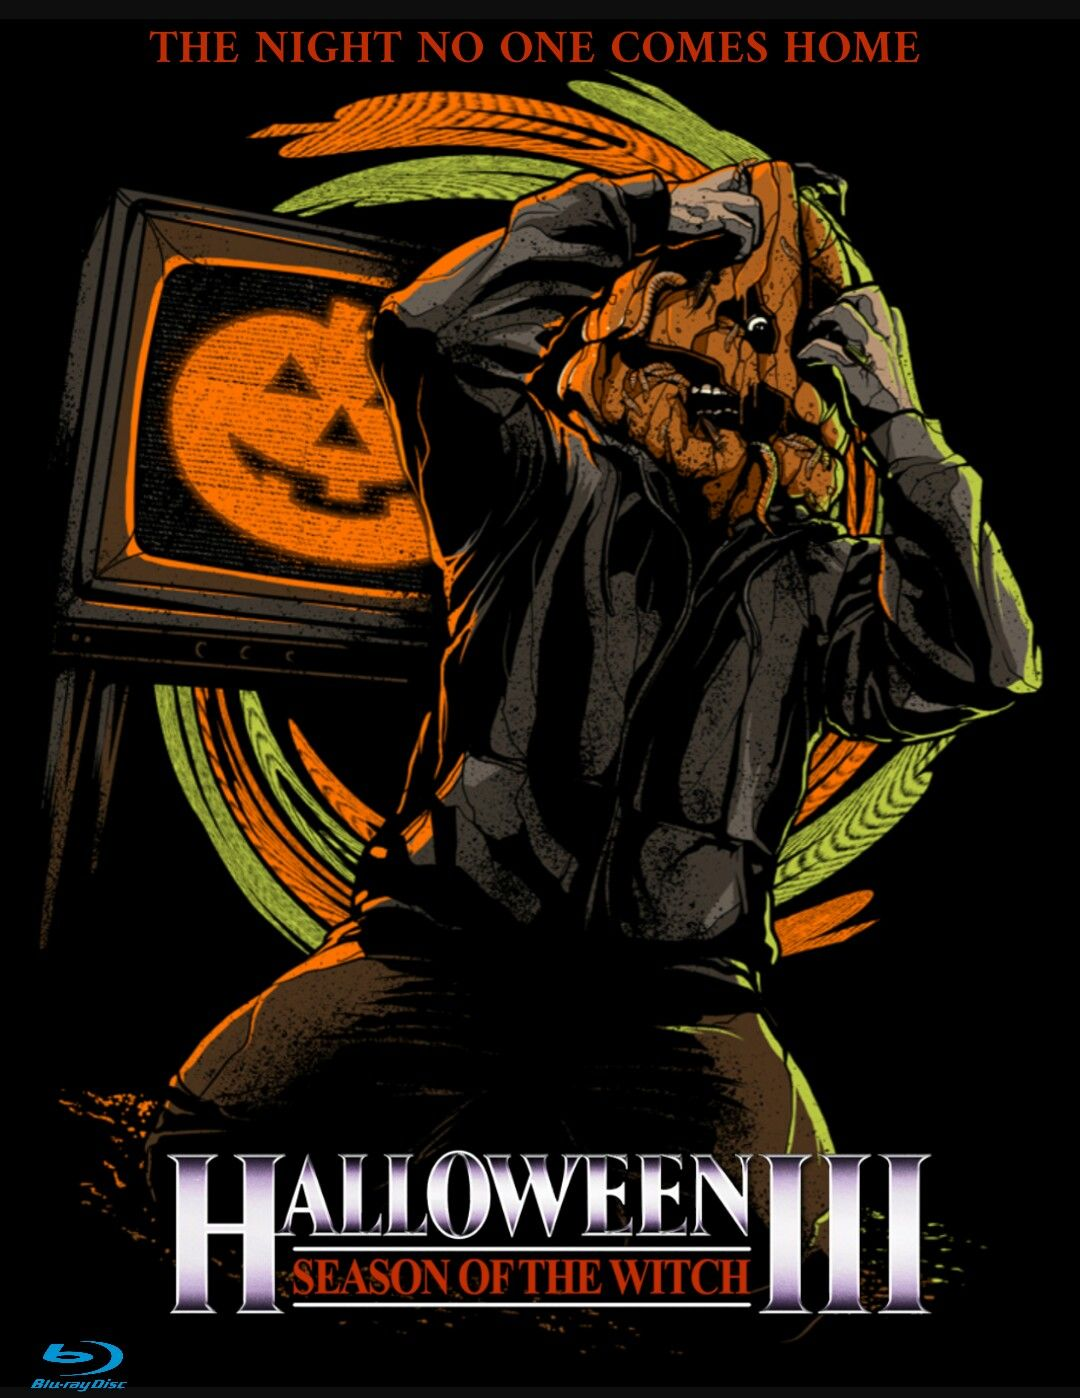 halloween 3 season of the witch horror movie poster - Halloween 3 Season Of The Witch Remake